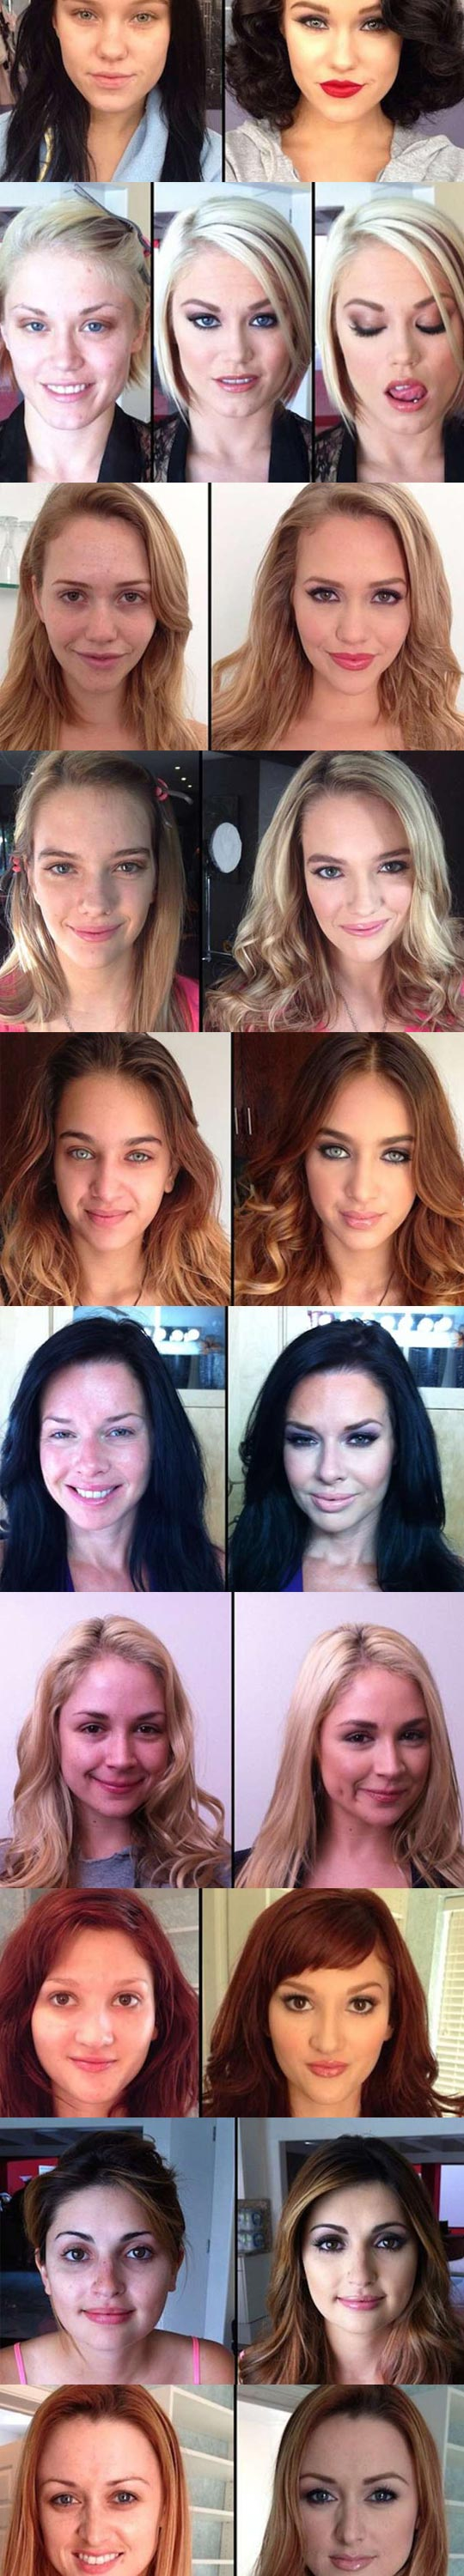 cool-makeup-before-after-girls-face